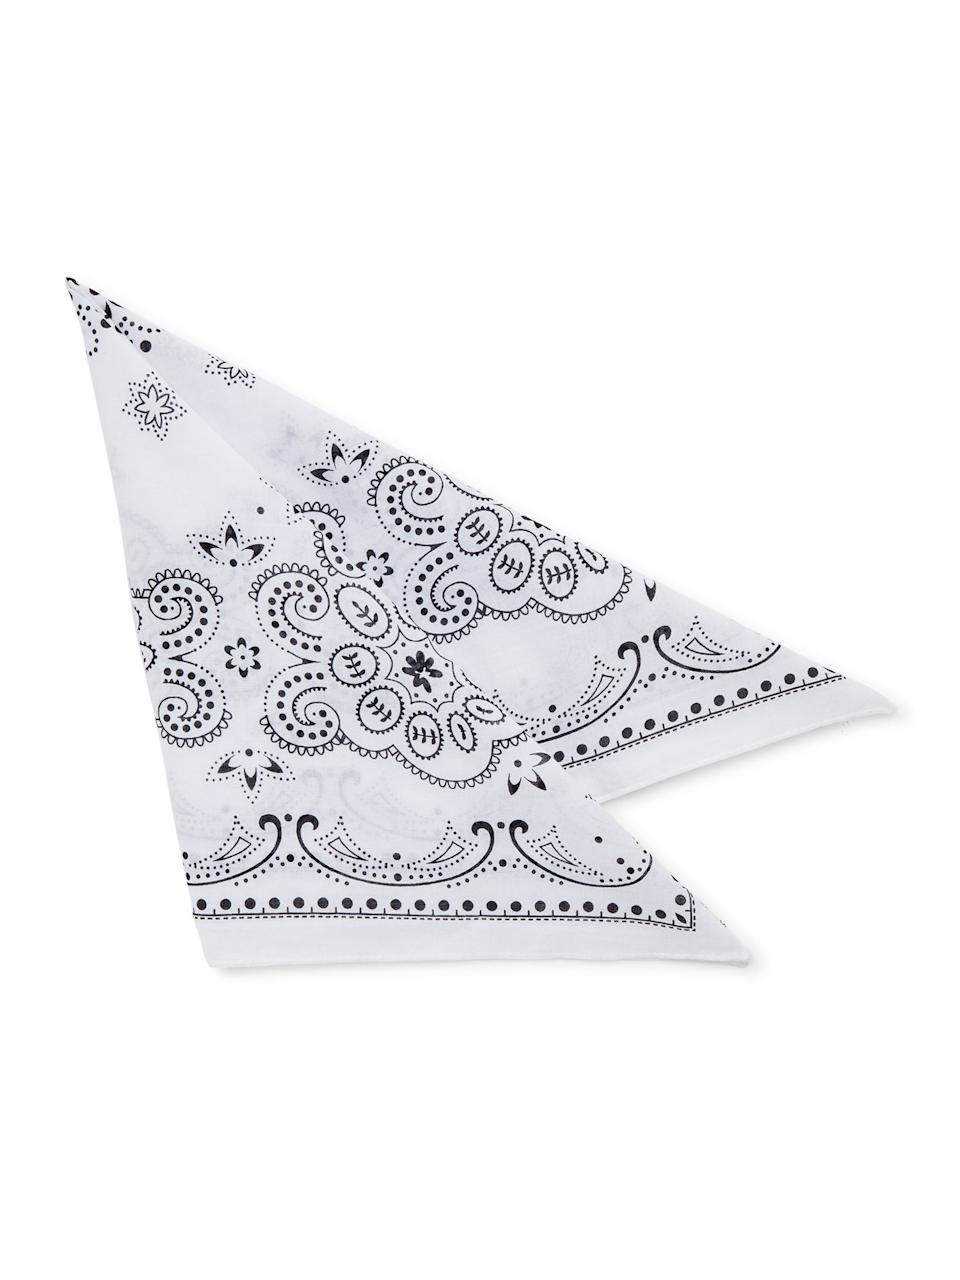 """<br><br><strong>Time and Tru</strong> Western Star Bandana, $, available at <a href=""""https://go.skimresources.com/?id=30283X879131&url=https%3A%2F%2Ffave.co%2F2yHiEId"""" rel=""""nofollow noopener"""" target=""""_blank"""" data-ylk=""""slk:Walmart"""" class=""""link rapid-noclick-resp"""">Walmart</a>"""